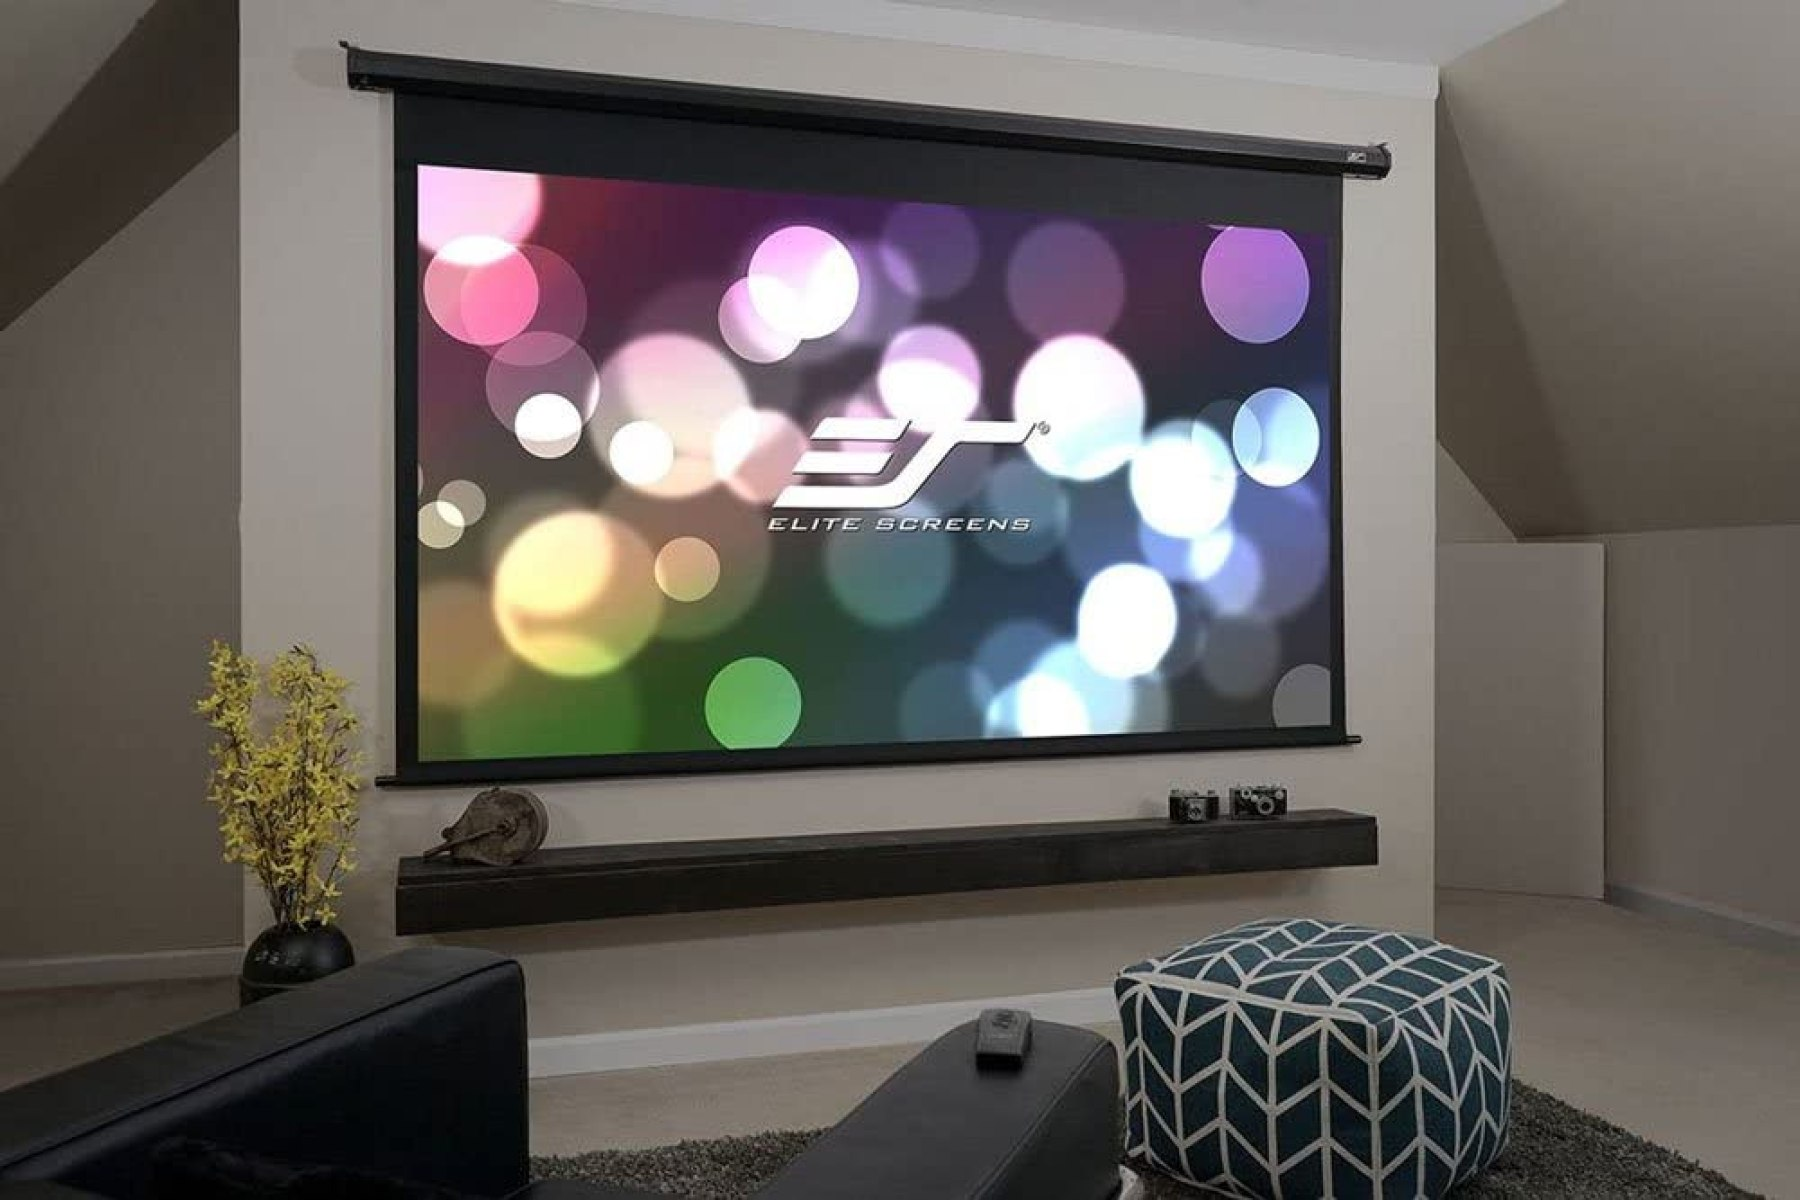 Best Projector Screen for Indoor, Outdoor Use 2020: Top Picks, Reviews -  Rolling Stone